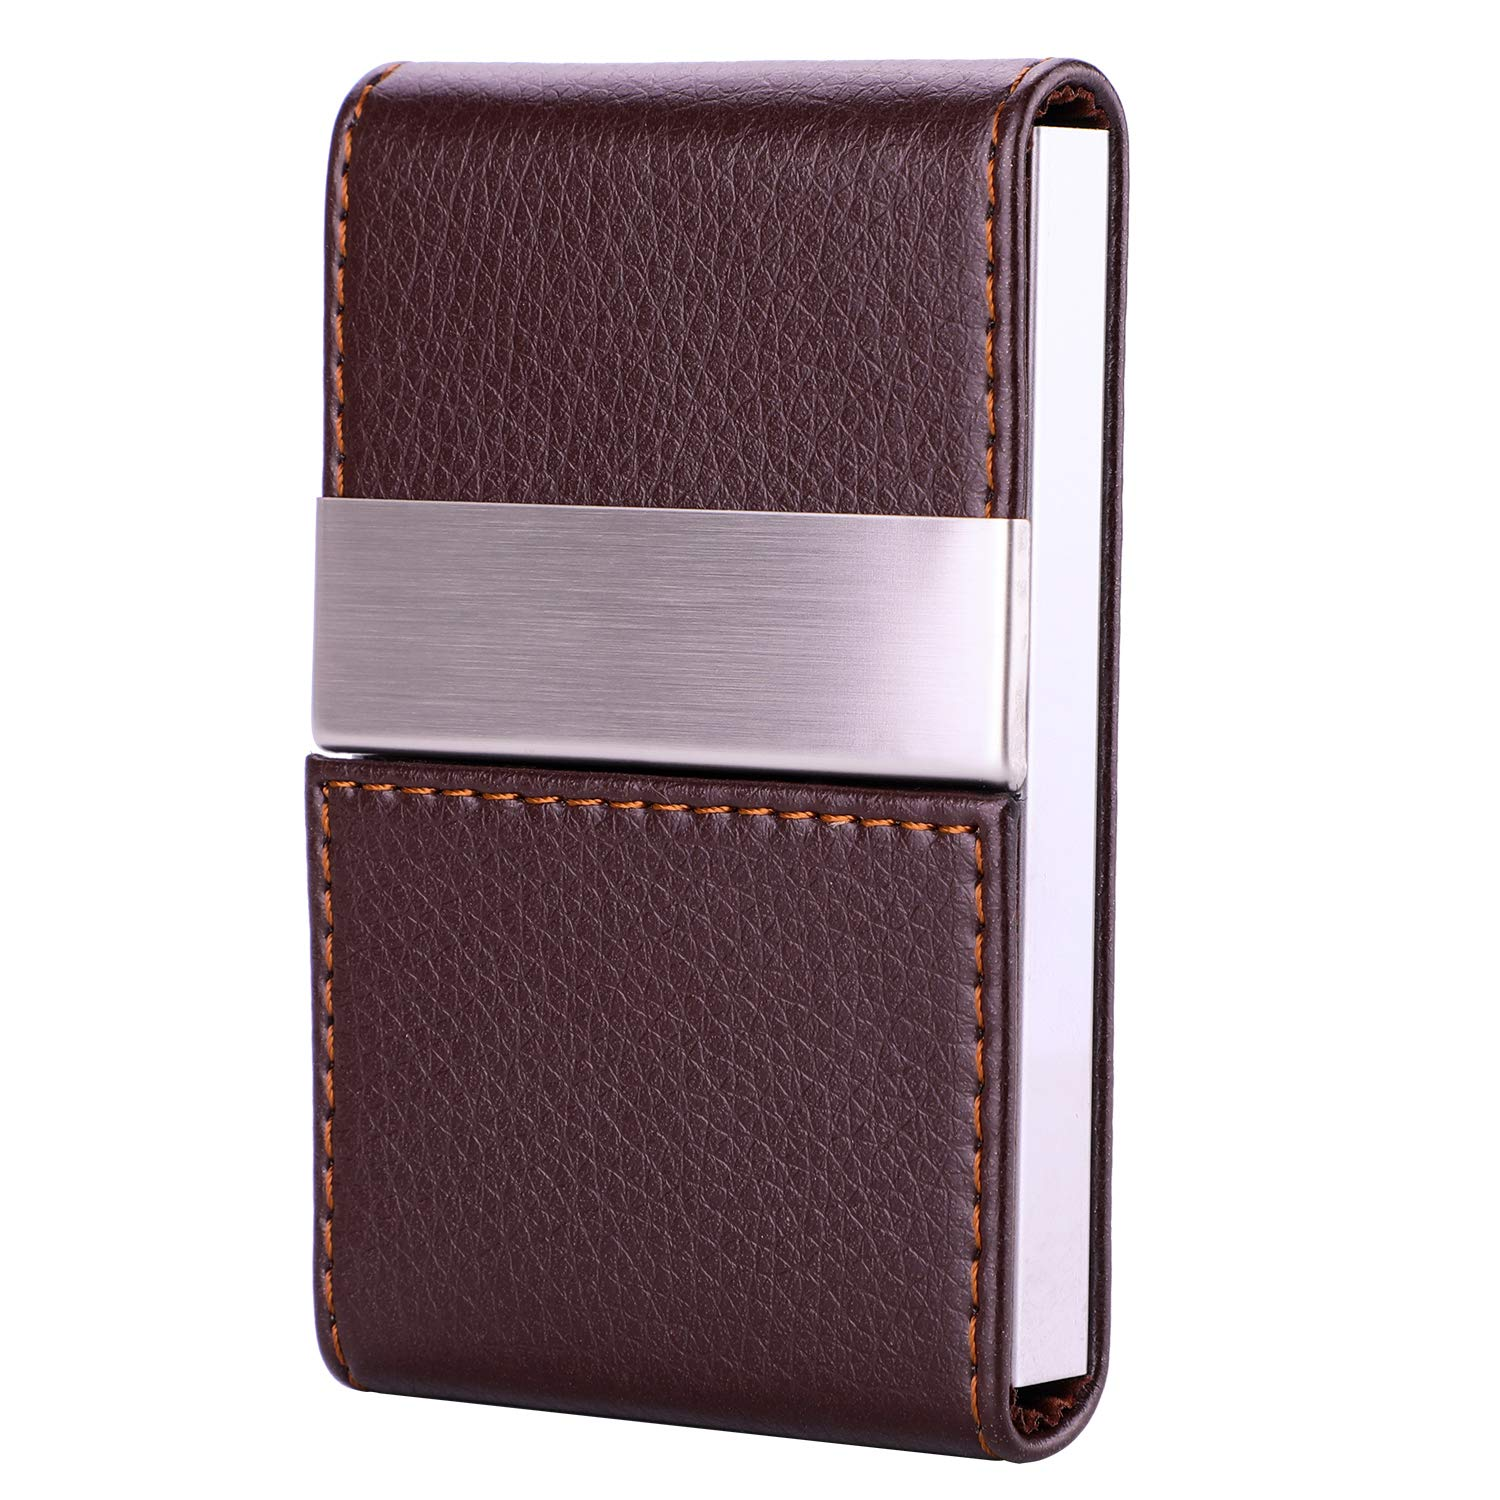 fb776c1f76f5 MaxGear PU Leather Business Card Holder Name Card Holder Case Credit Card  Case with Magnetic Shut Double Side Open, Holds 20 Business Cards, ...